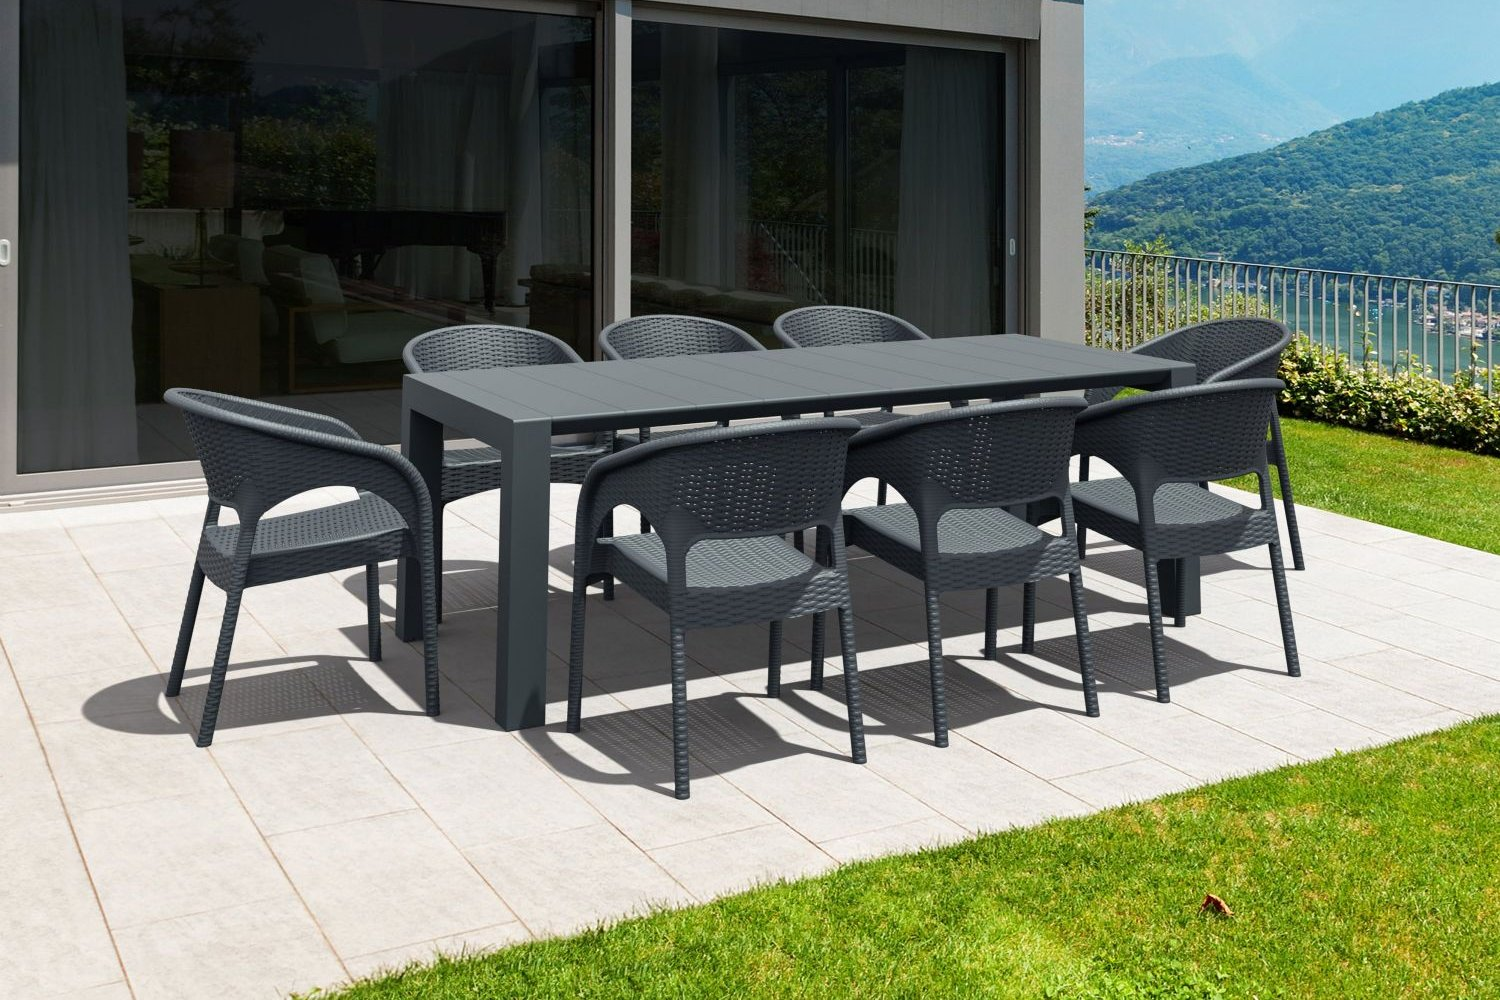 Panama Extendable Patio Dining Set 9 piece Dark Gray ISP8083S-DG - 2